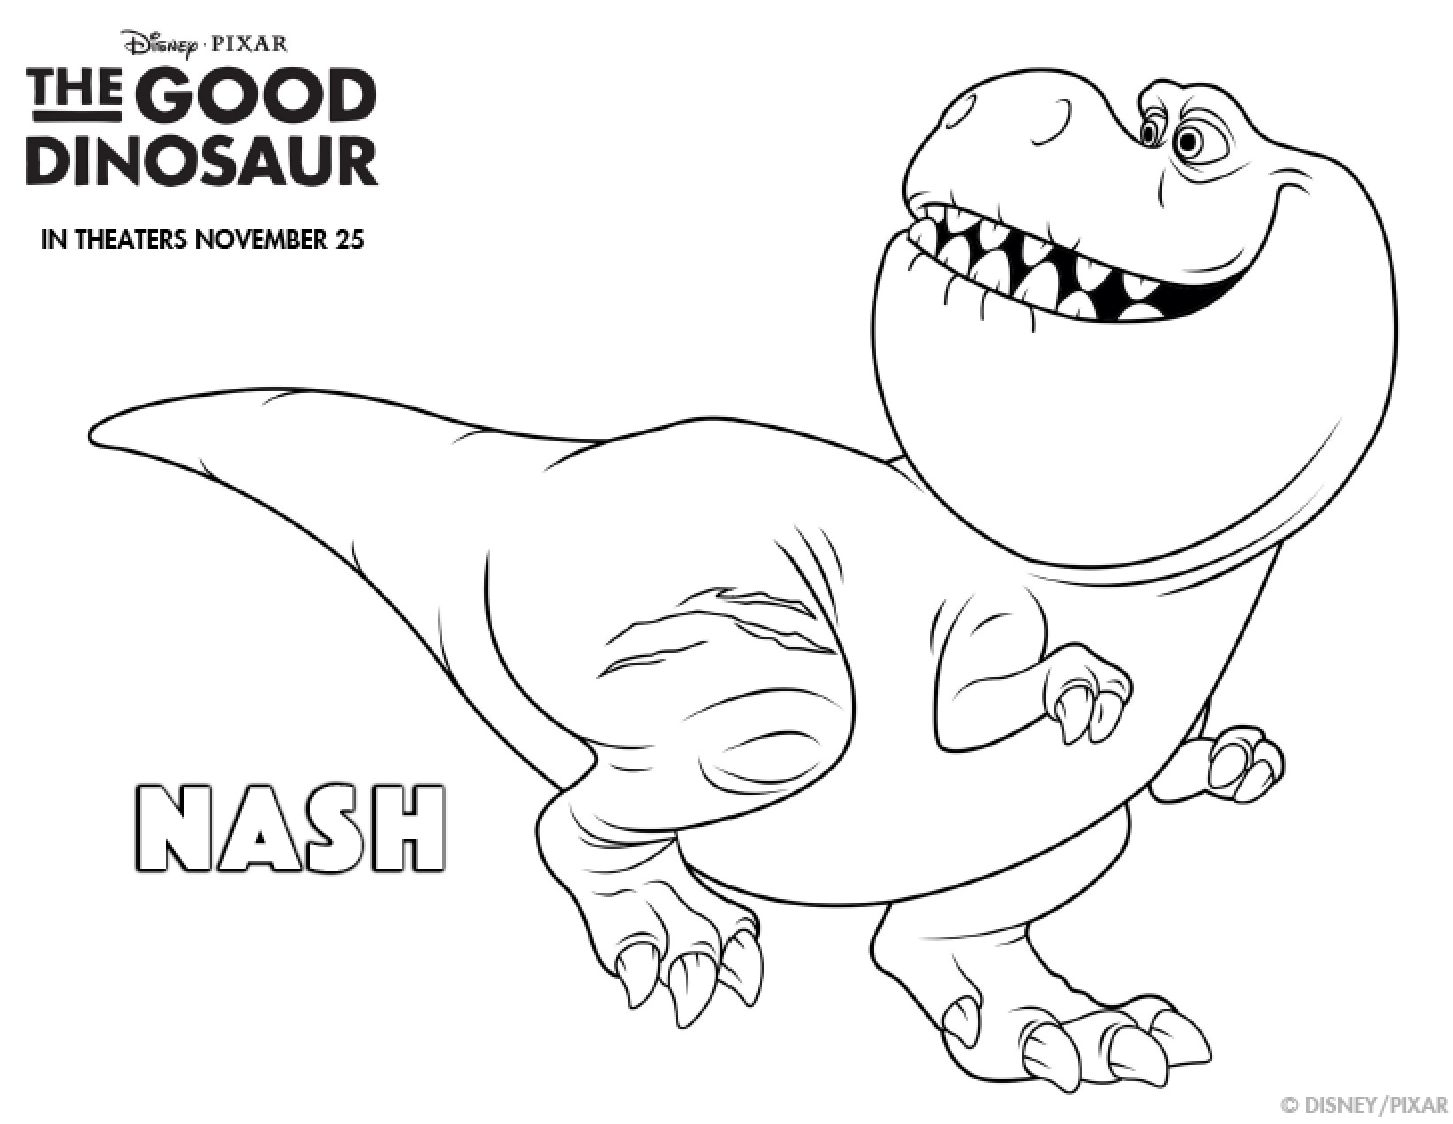 Dinosaur Coloring Pages Dinosaur Coloring Pages With Book Also Free Disney Kids Image